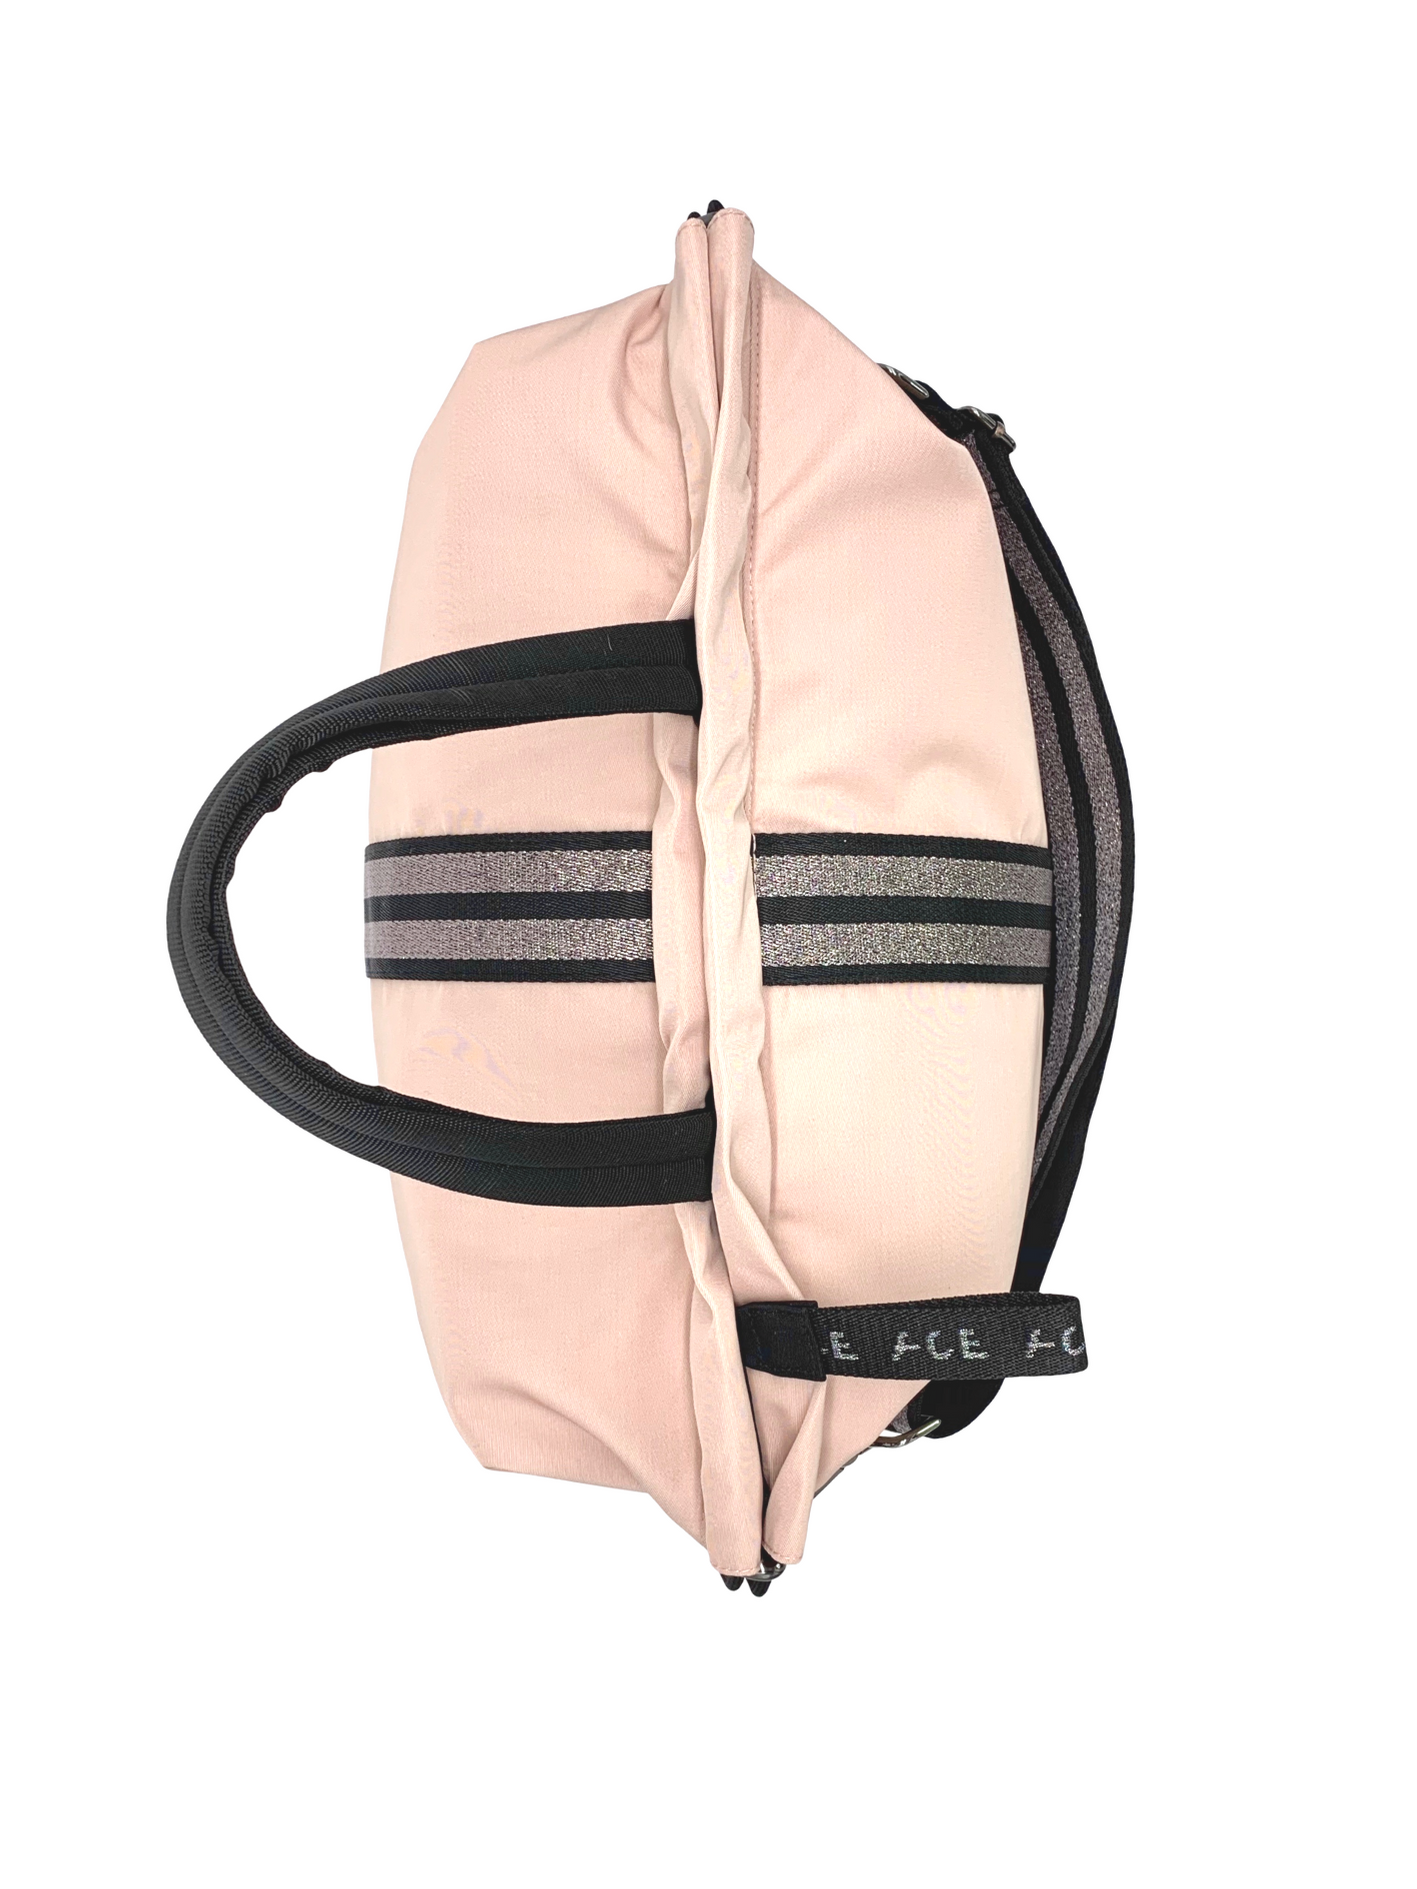 ACE Pink Nude gym bag in sustainable ECONYL